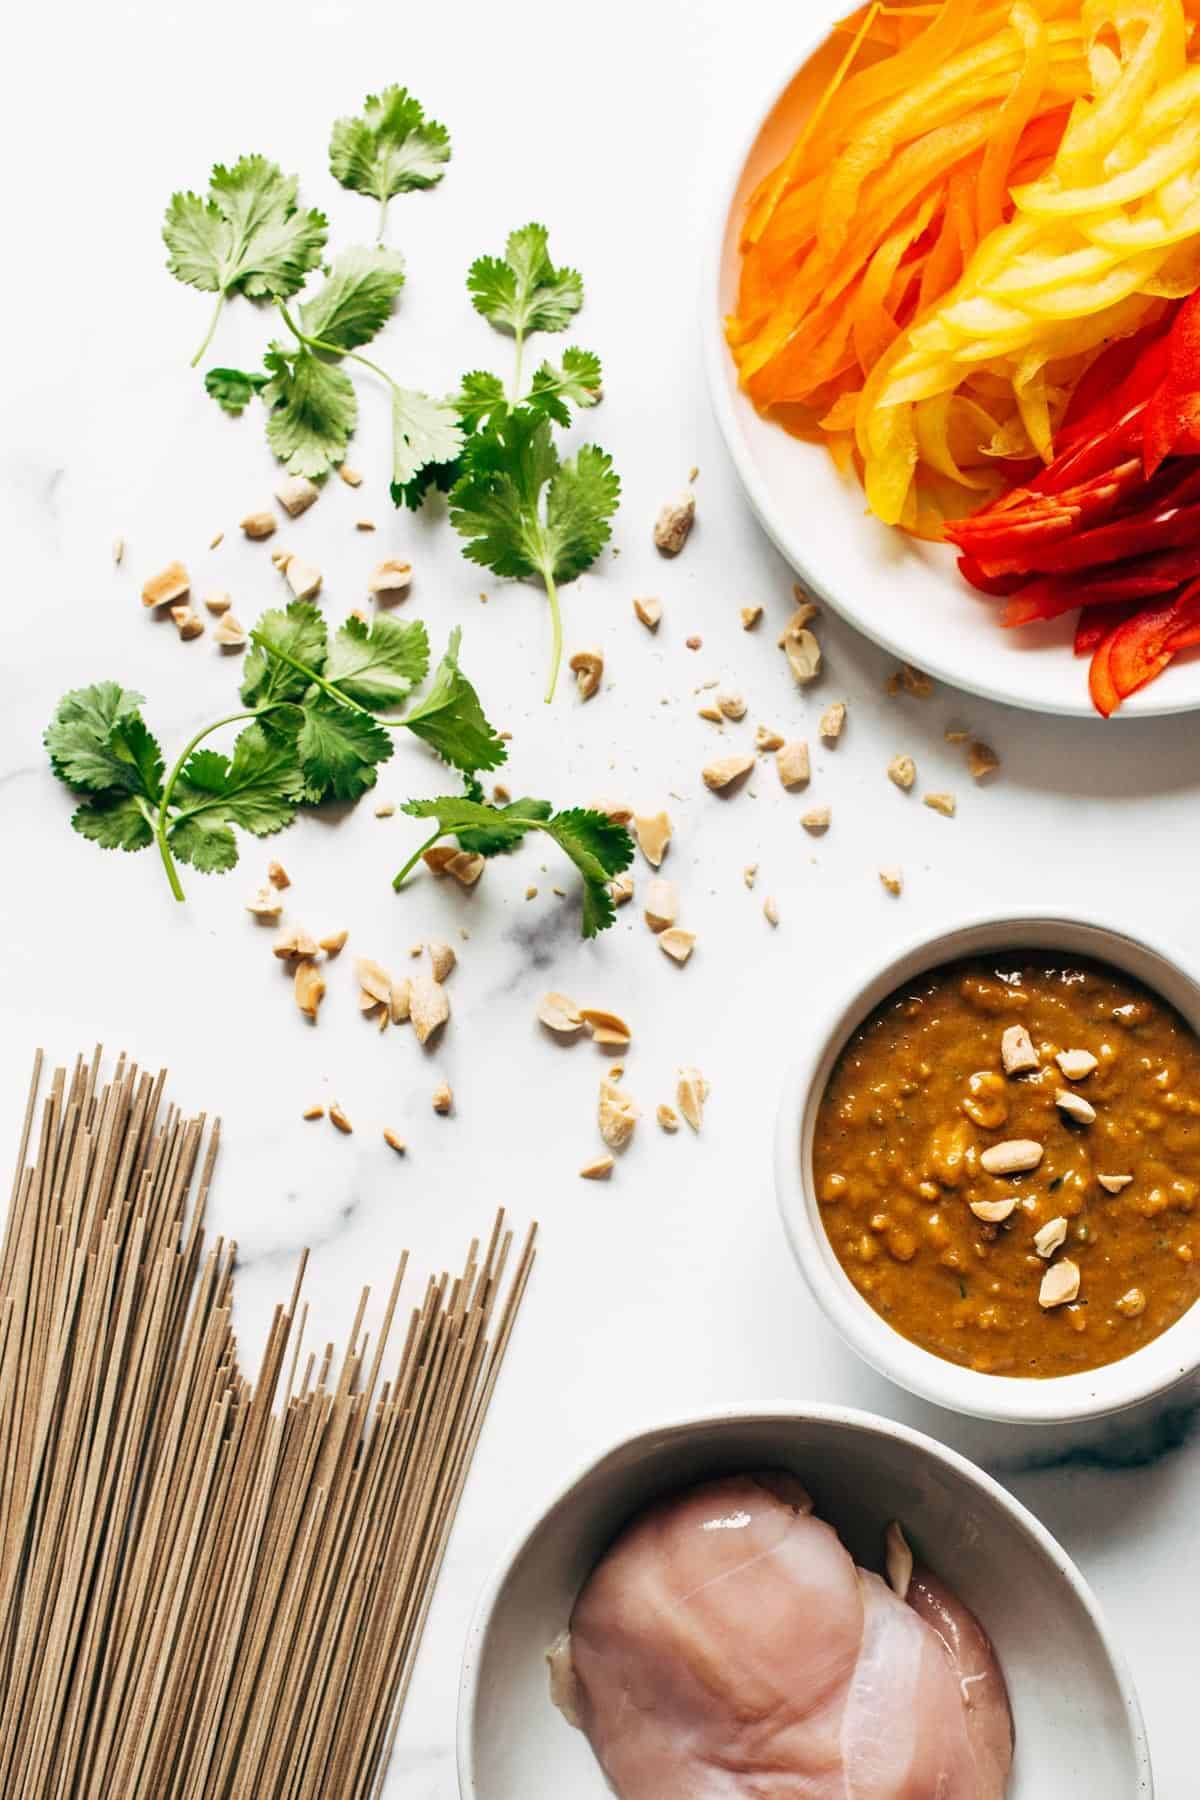 Ingredients for Spicy Peanut Soba Noodle Salad.